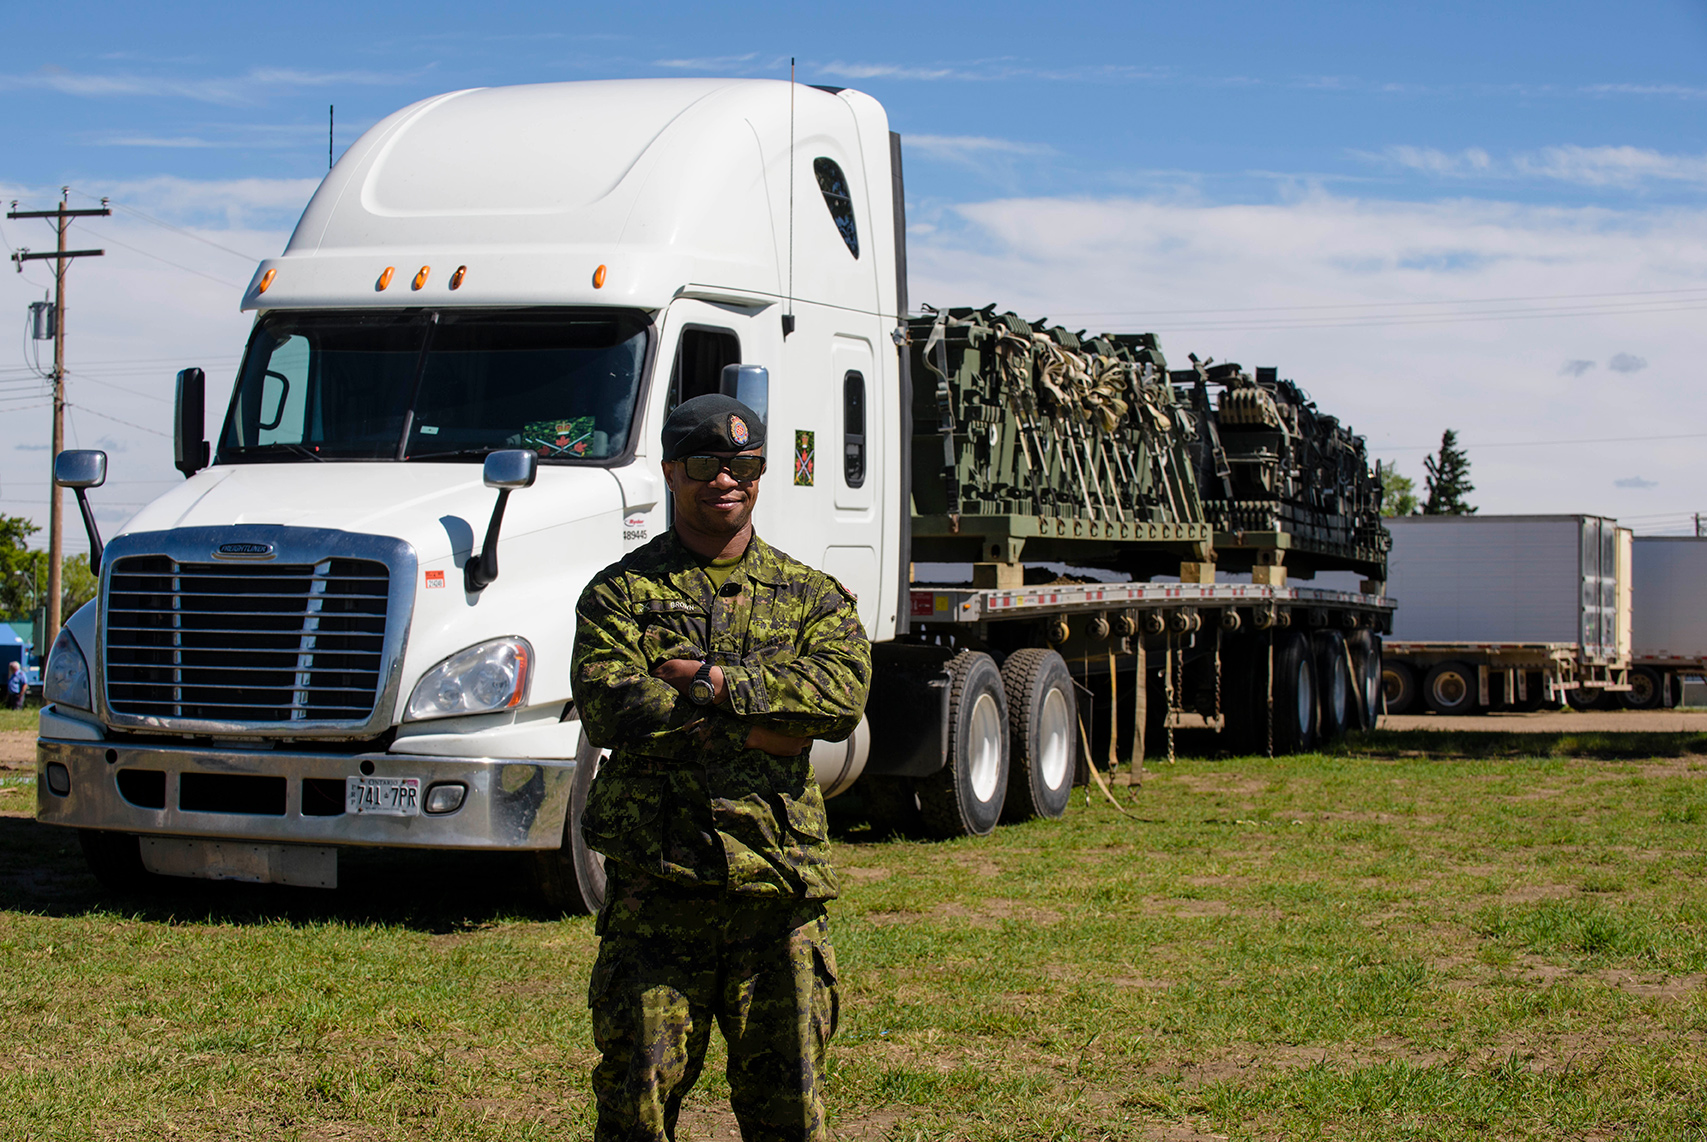 Corporal Shawn Brown prepares to depart Canadian Forces Base Wainwright in Alberta with a load of equipment he was tasked with returning to Petawawa, Ontario. Cpl Brown received training in tractor trailer operation as part of a program that will generate substantial financial savings by reducing the Canadian Army's reliance on civilian contractors for logistical services. Photo: Master Corporal Malcolm Byers, 3rd Canadian Division Support Group Edmonton. ©2017 DND/MDN.